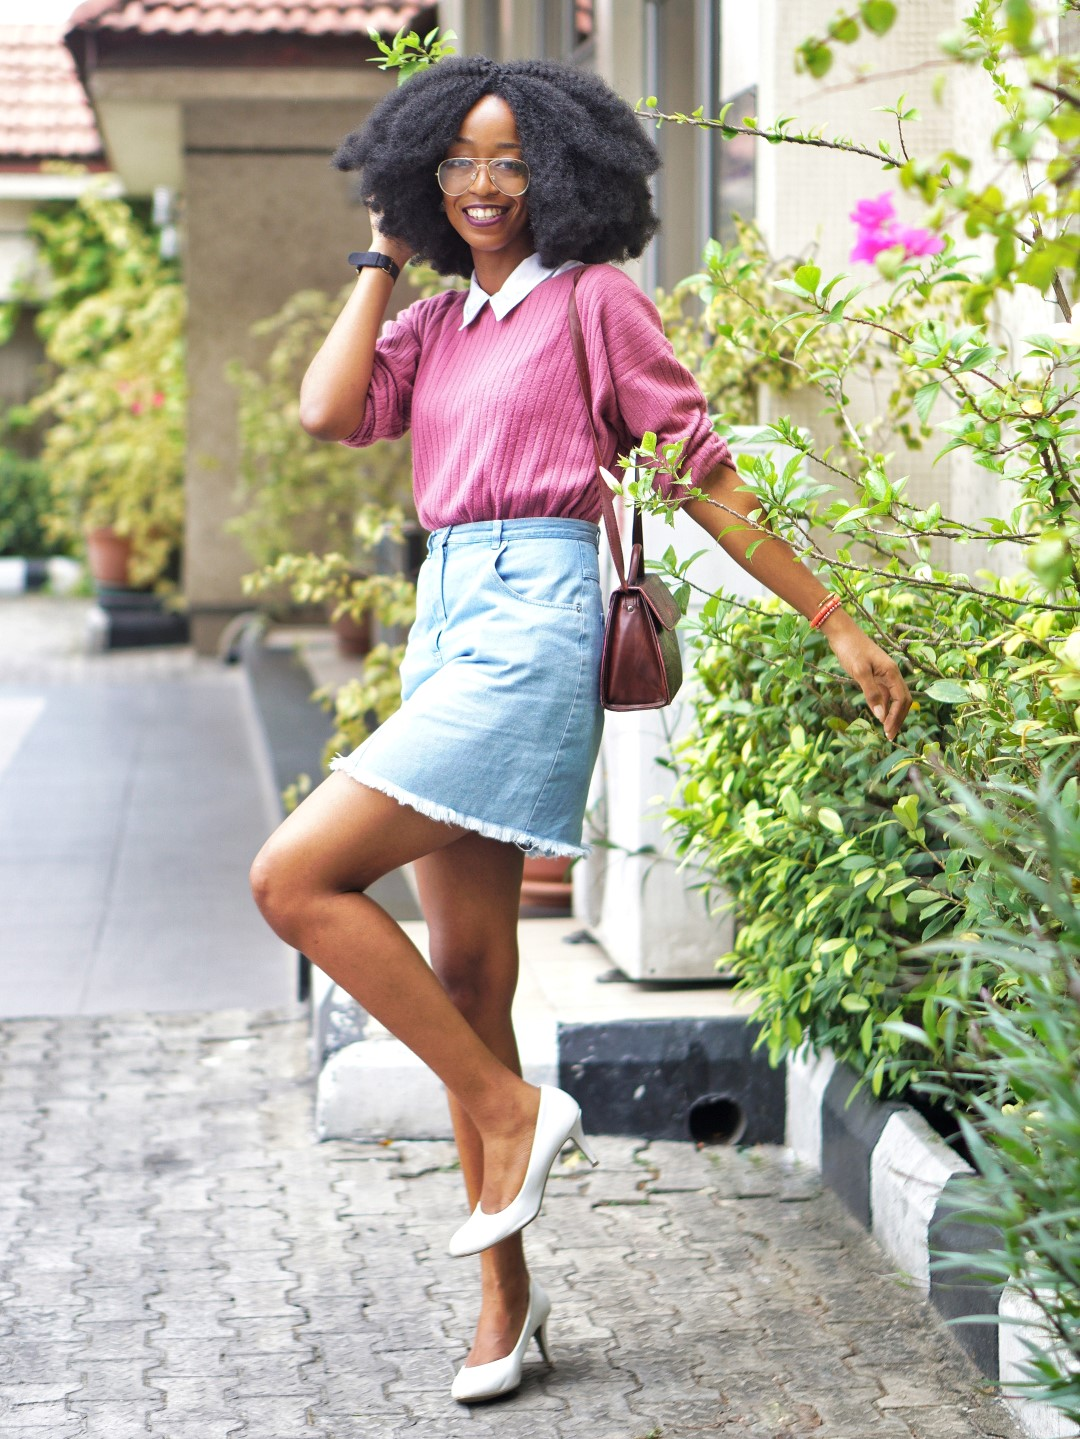 nigerian fashion blogger Cassie daves wearing a denim mini skirt, and white court shoes